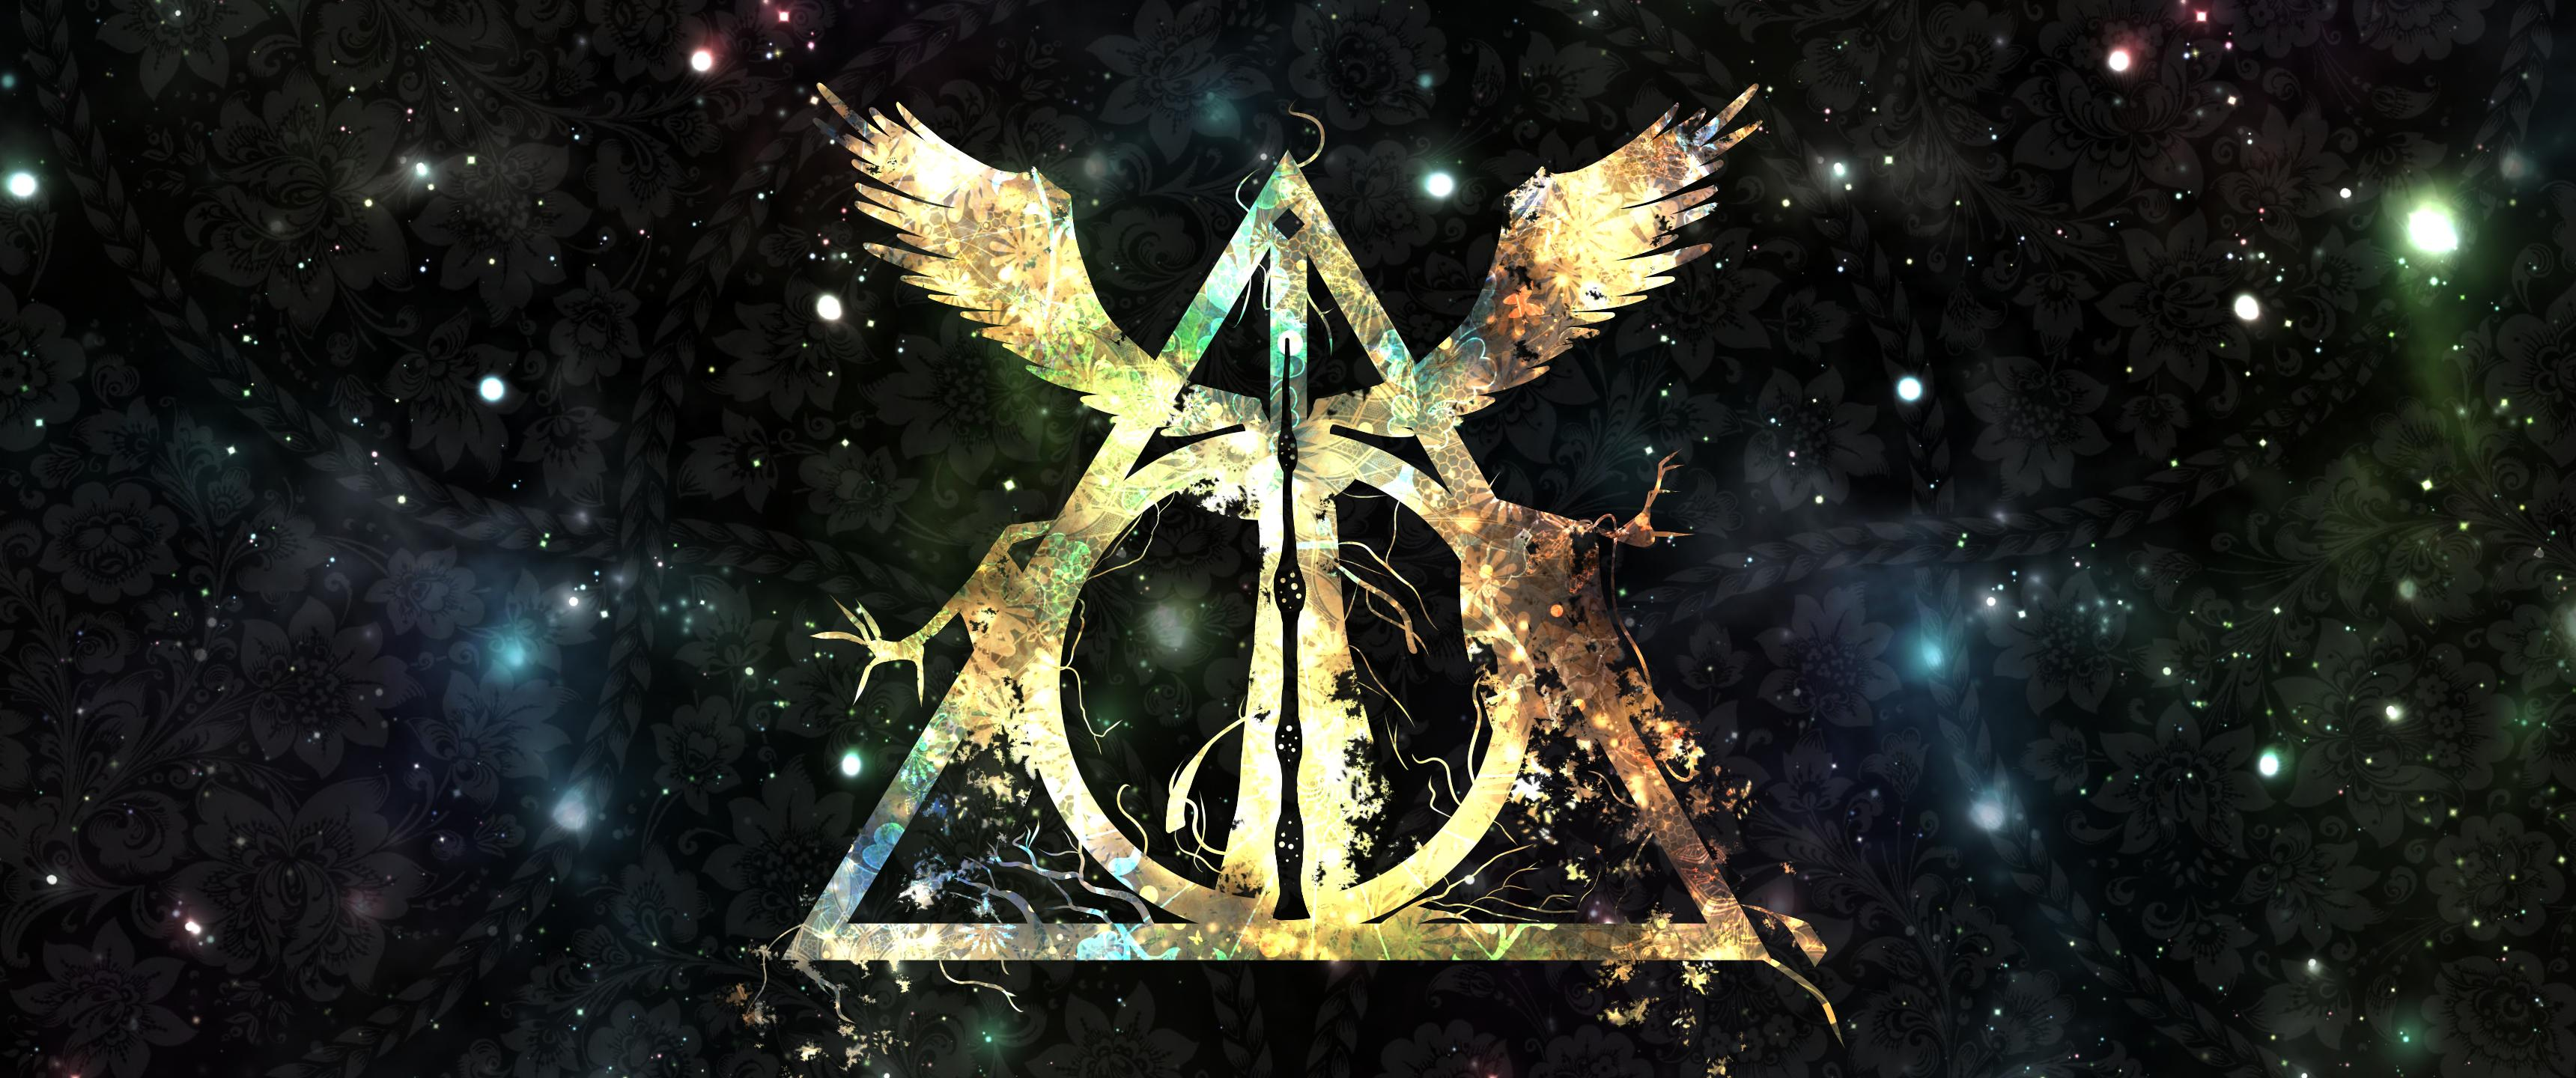 Harry Potter Deathly Hallows HD Wallpapers